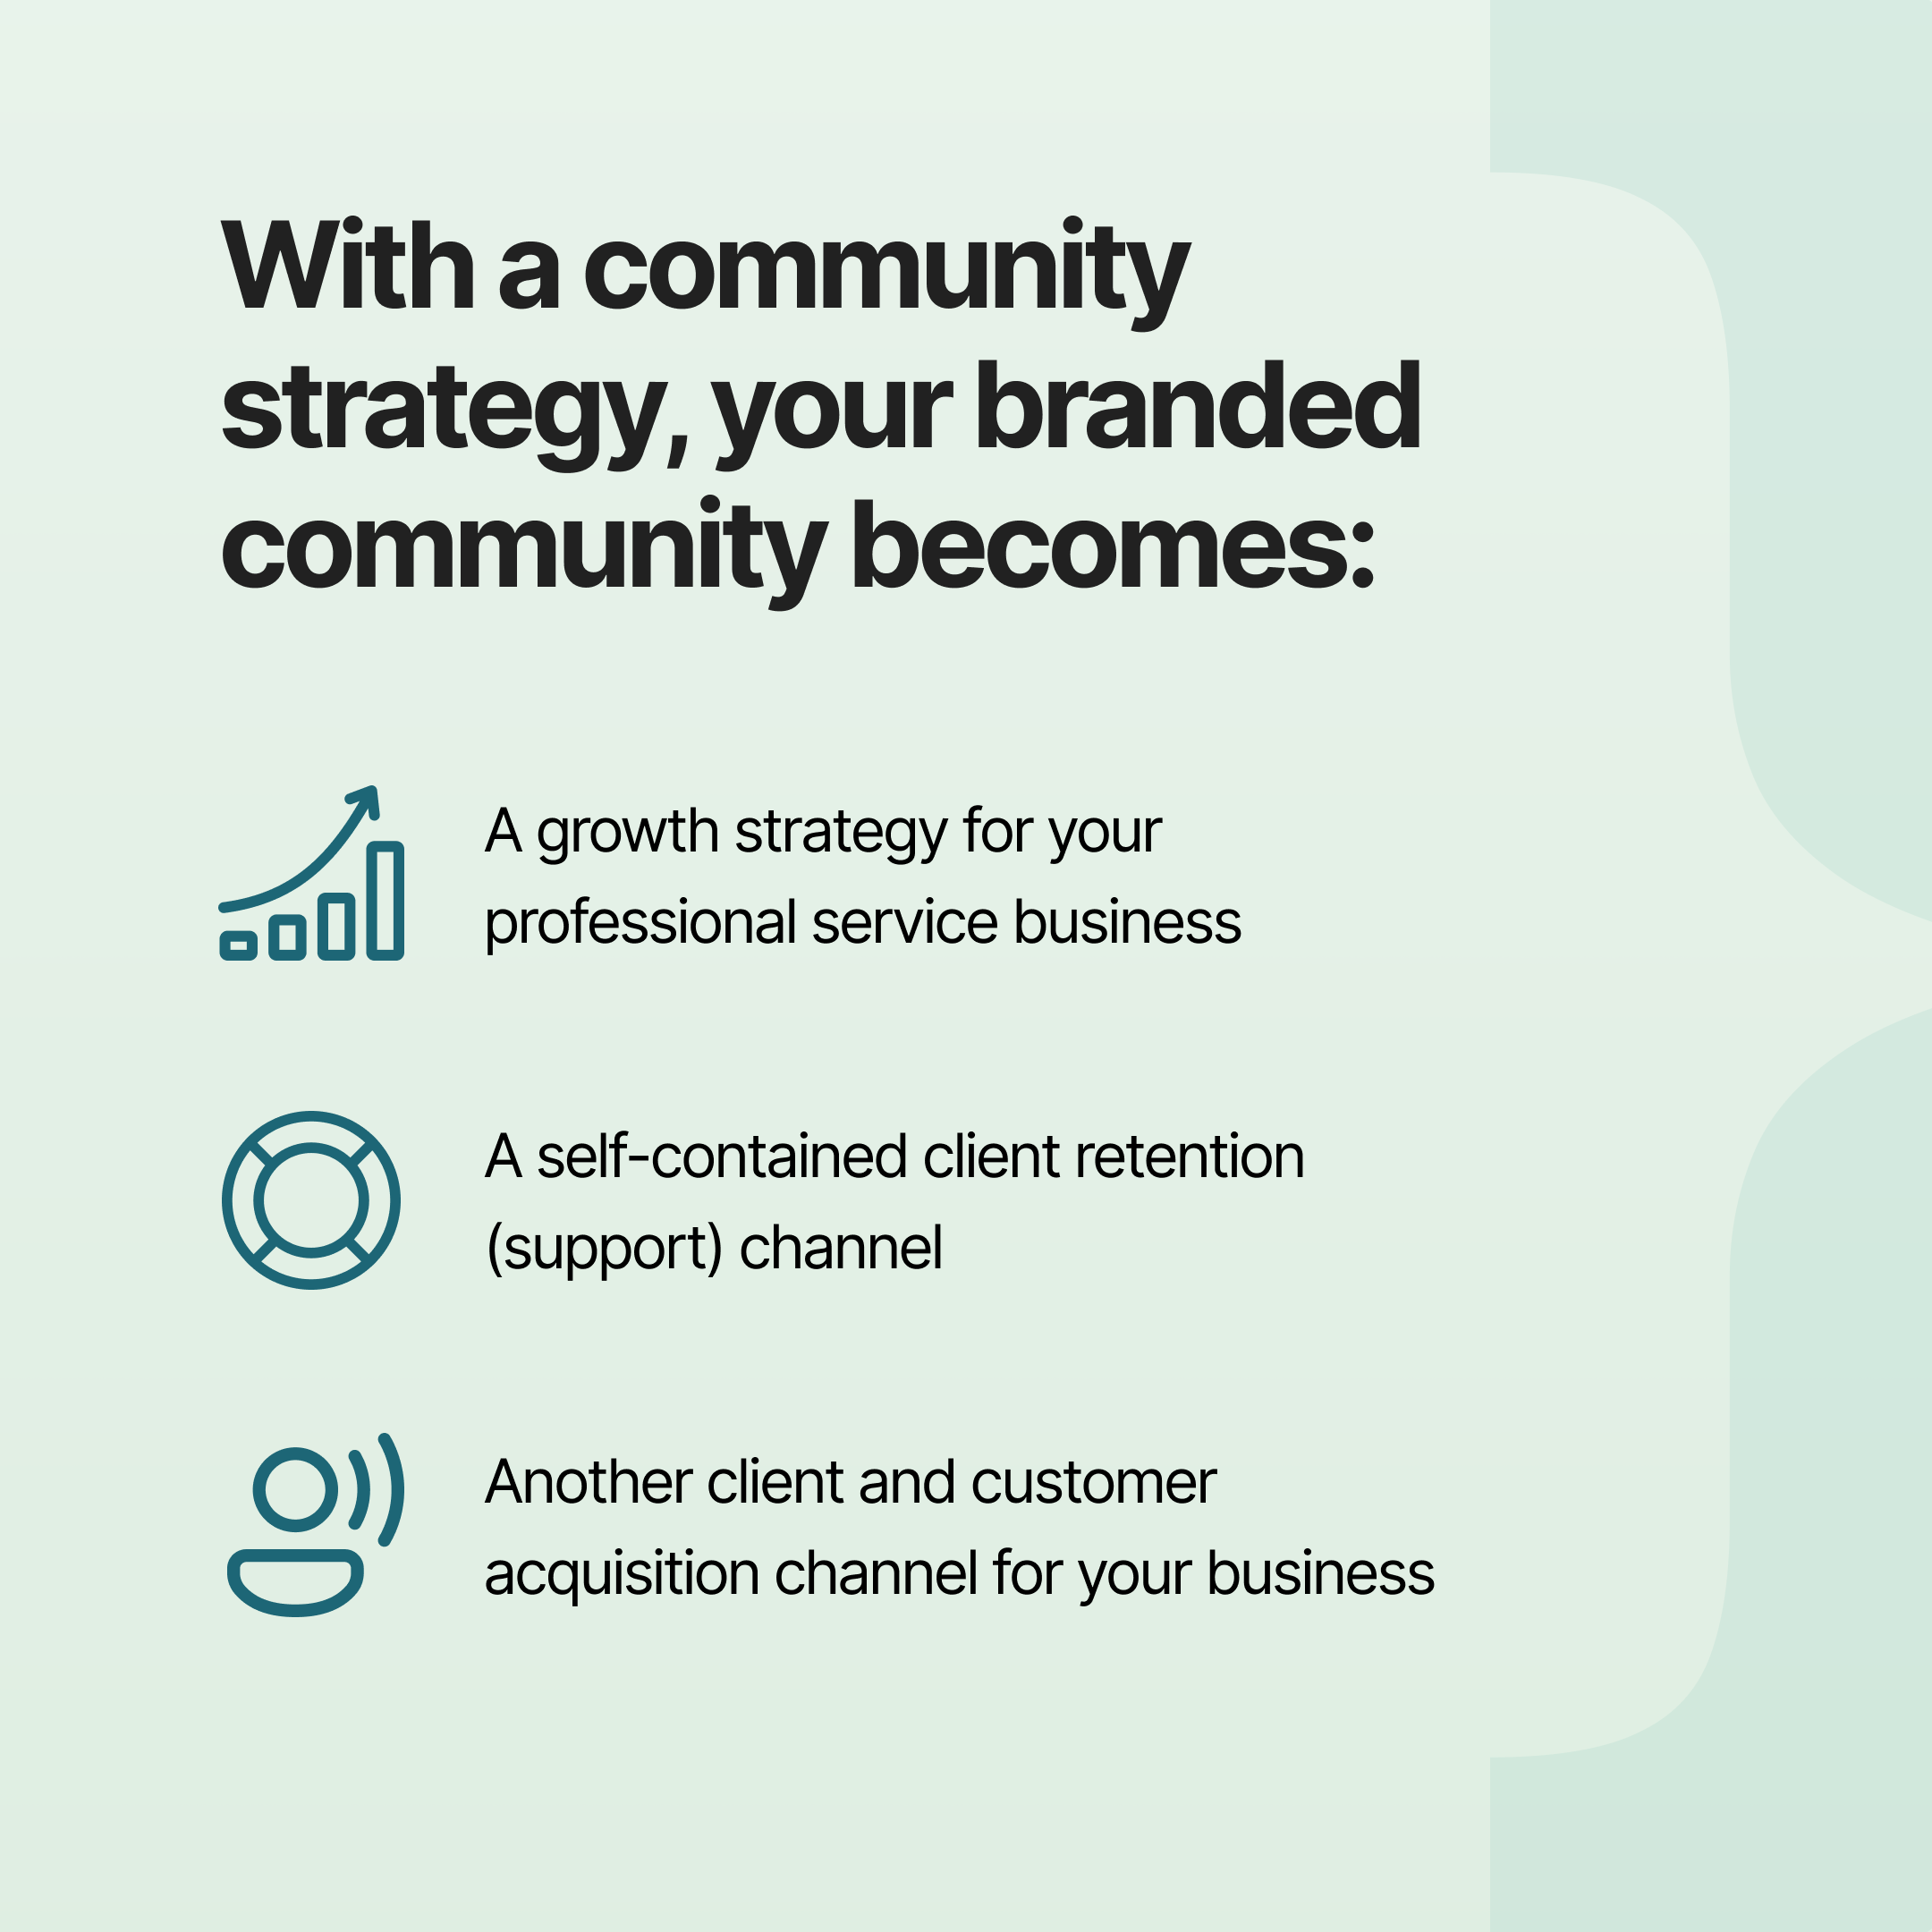 Community strategy equals client acquisition, support and growth strategy for your service business | Profi | community building business model strategy